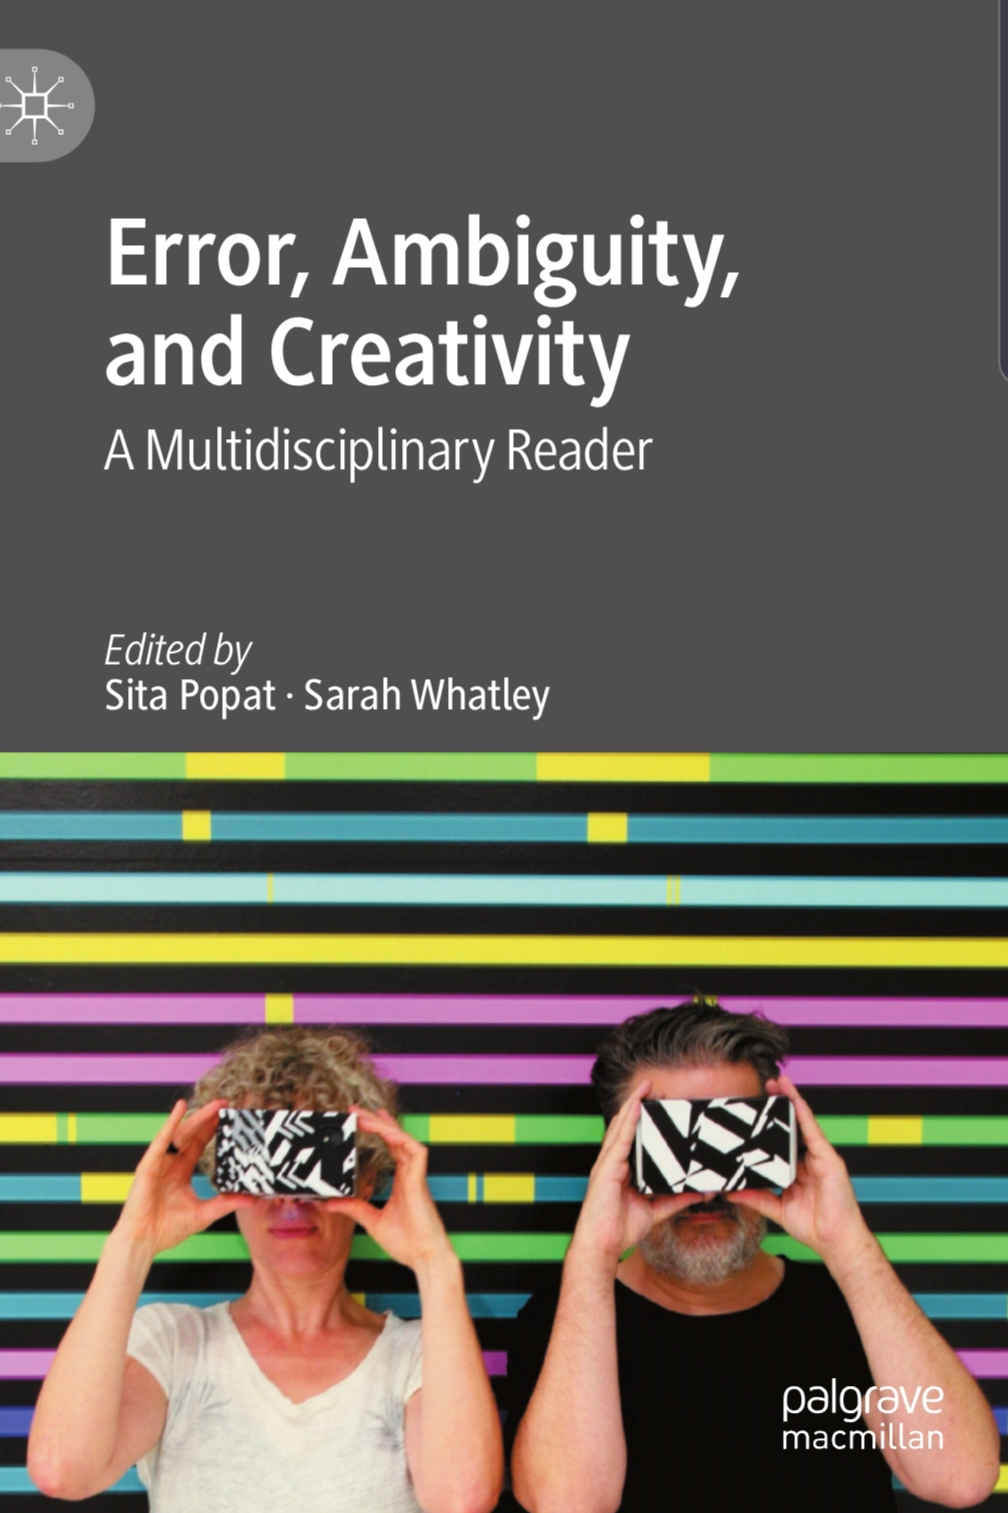 Sita Popat, Sarah Whatley (Edited by), Error, Ambiguity, and Creativity: A Multidisciplinary Reader. Springer